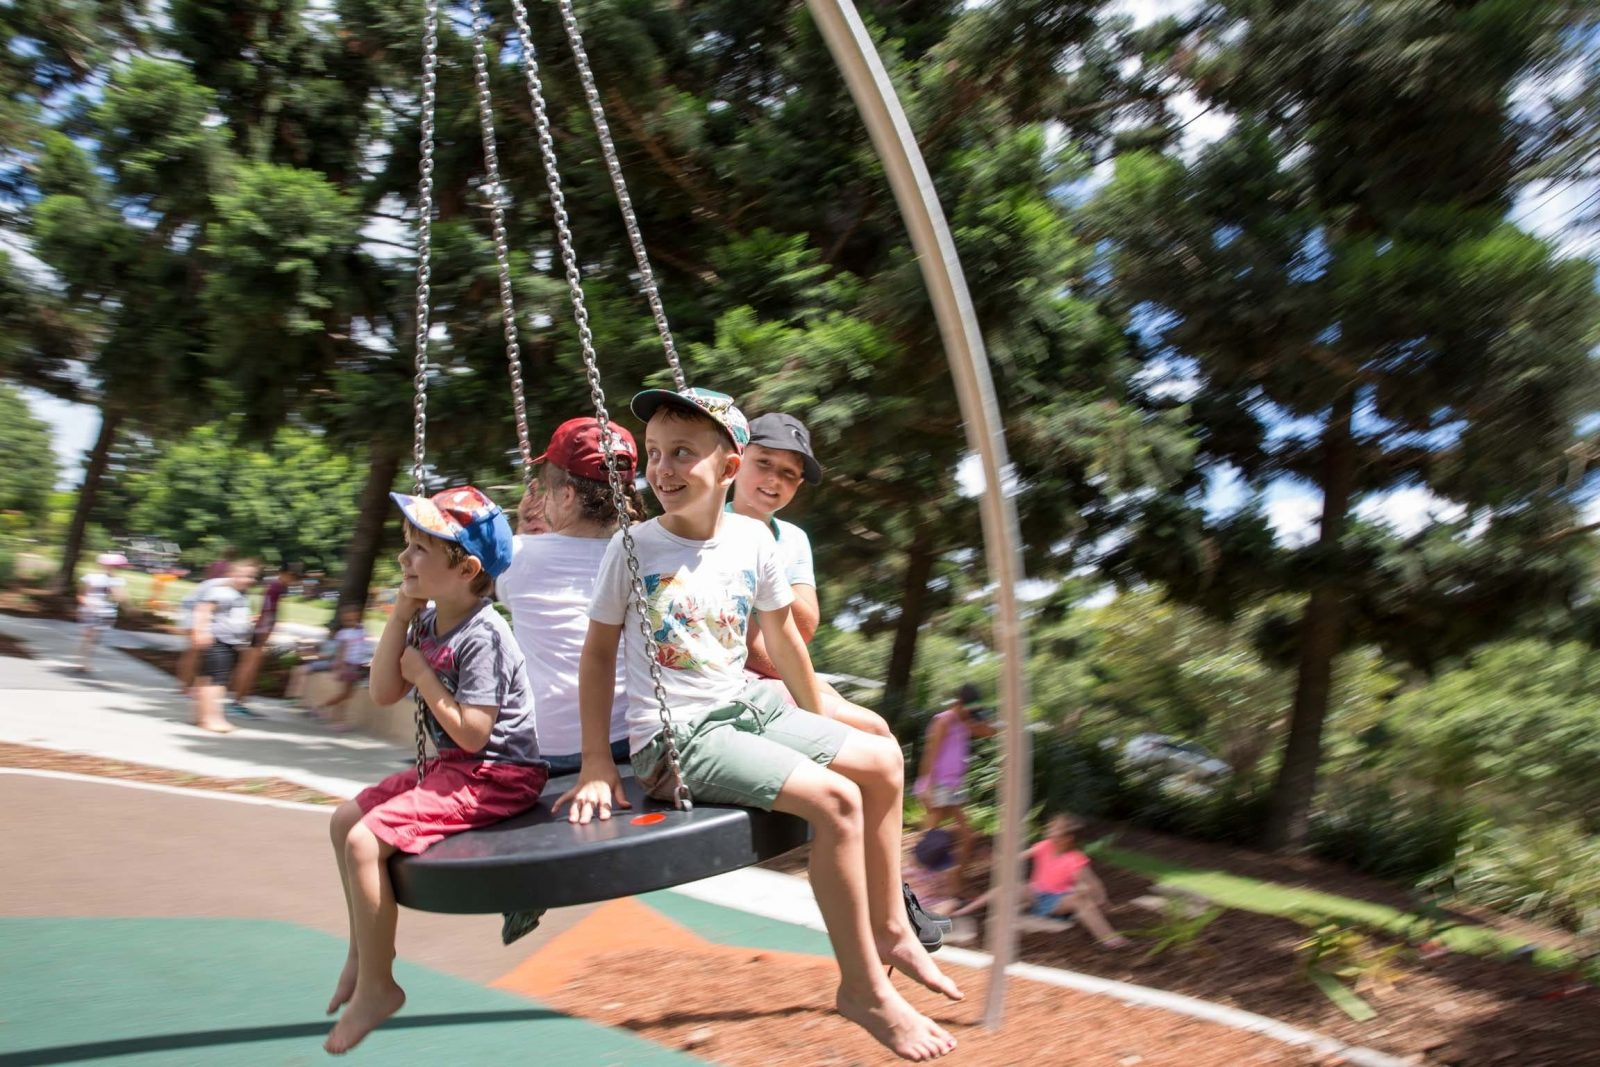 Four kids sitting on a large round swing at Pine Rivers Park